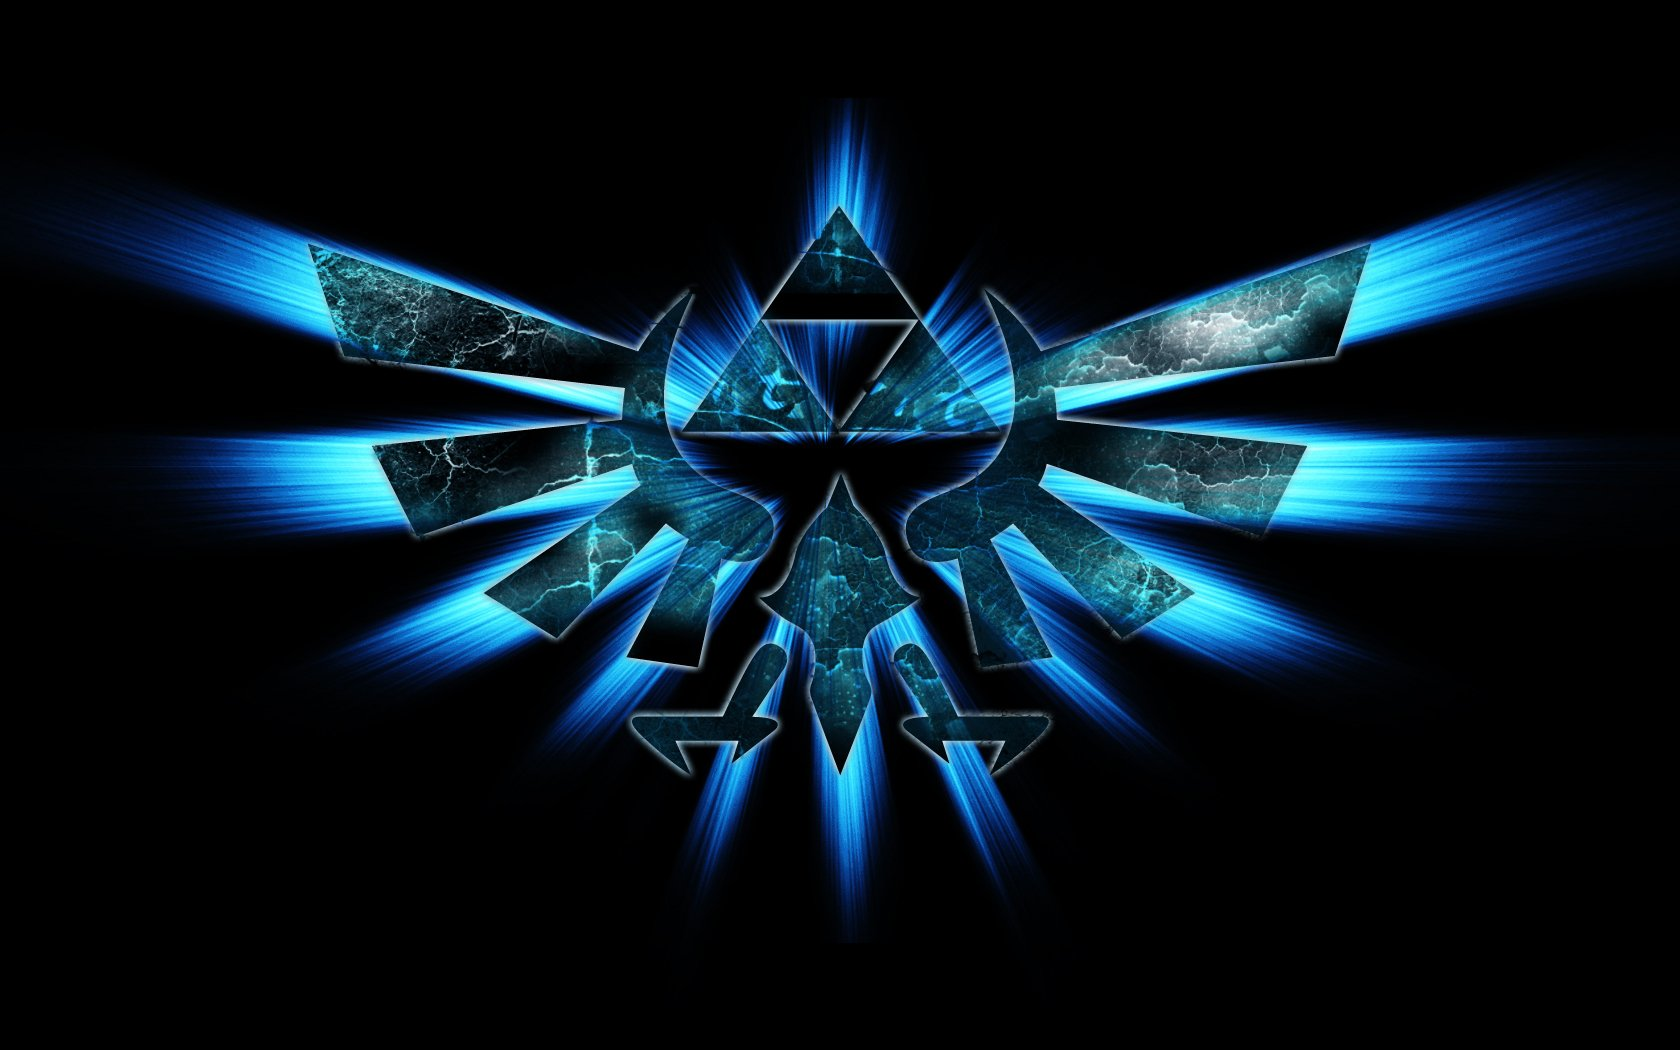 Hd wallpaper zelda - Hd Wallpaper Background Id 58534 1680x1050 Video Game Zelda